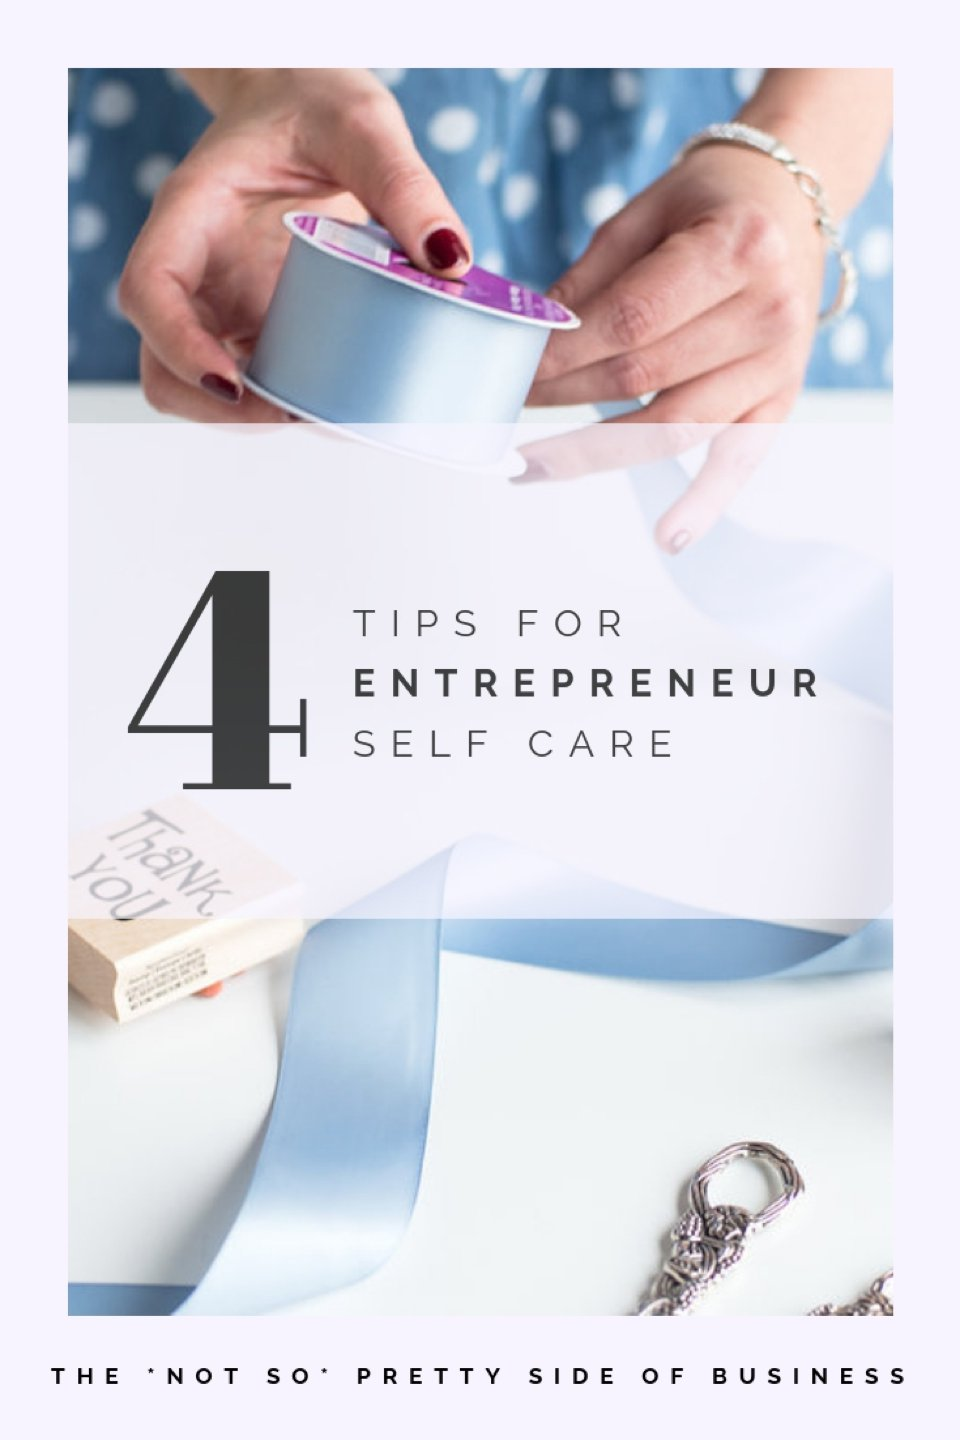 Being an entrepreneur can sound pretty glamorous. You get to work from home, set your own hours, no horrible boss, and we can't forget about all of that pretty stationary we see on   #bossbabes   Instragram feeds! But in truth, things are not so easy or so pretty. Today, I am sharing 4 tips that might help you on your quest for balance! #smallbusiness #entrepreneur #girlboss